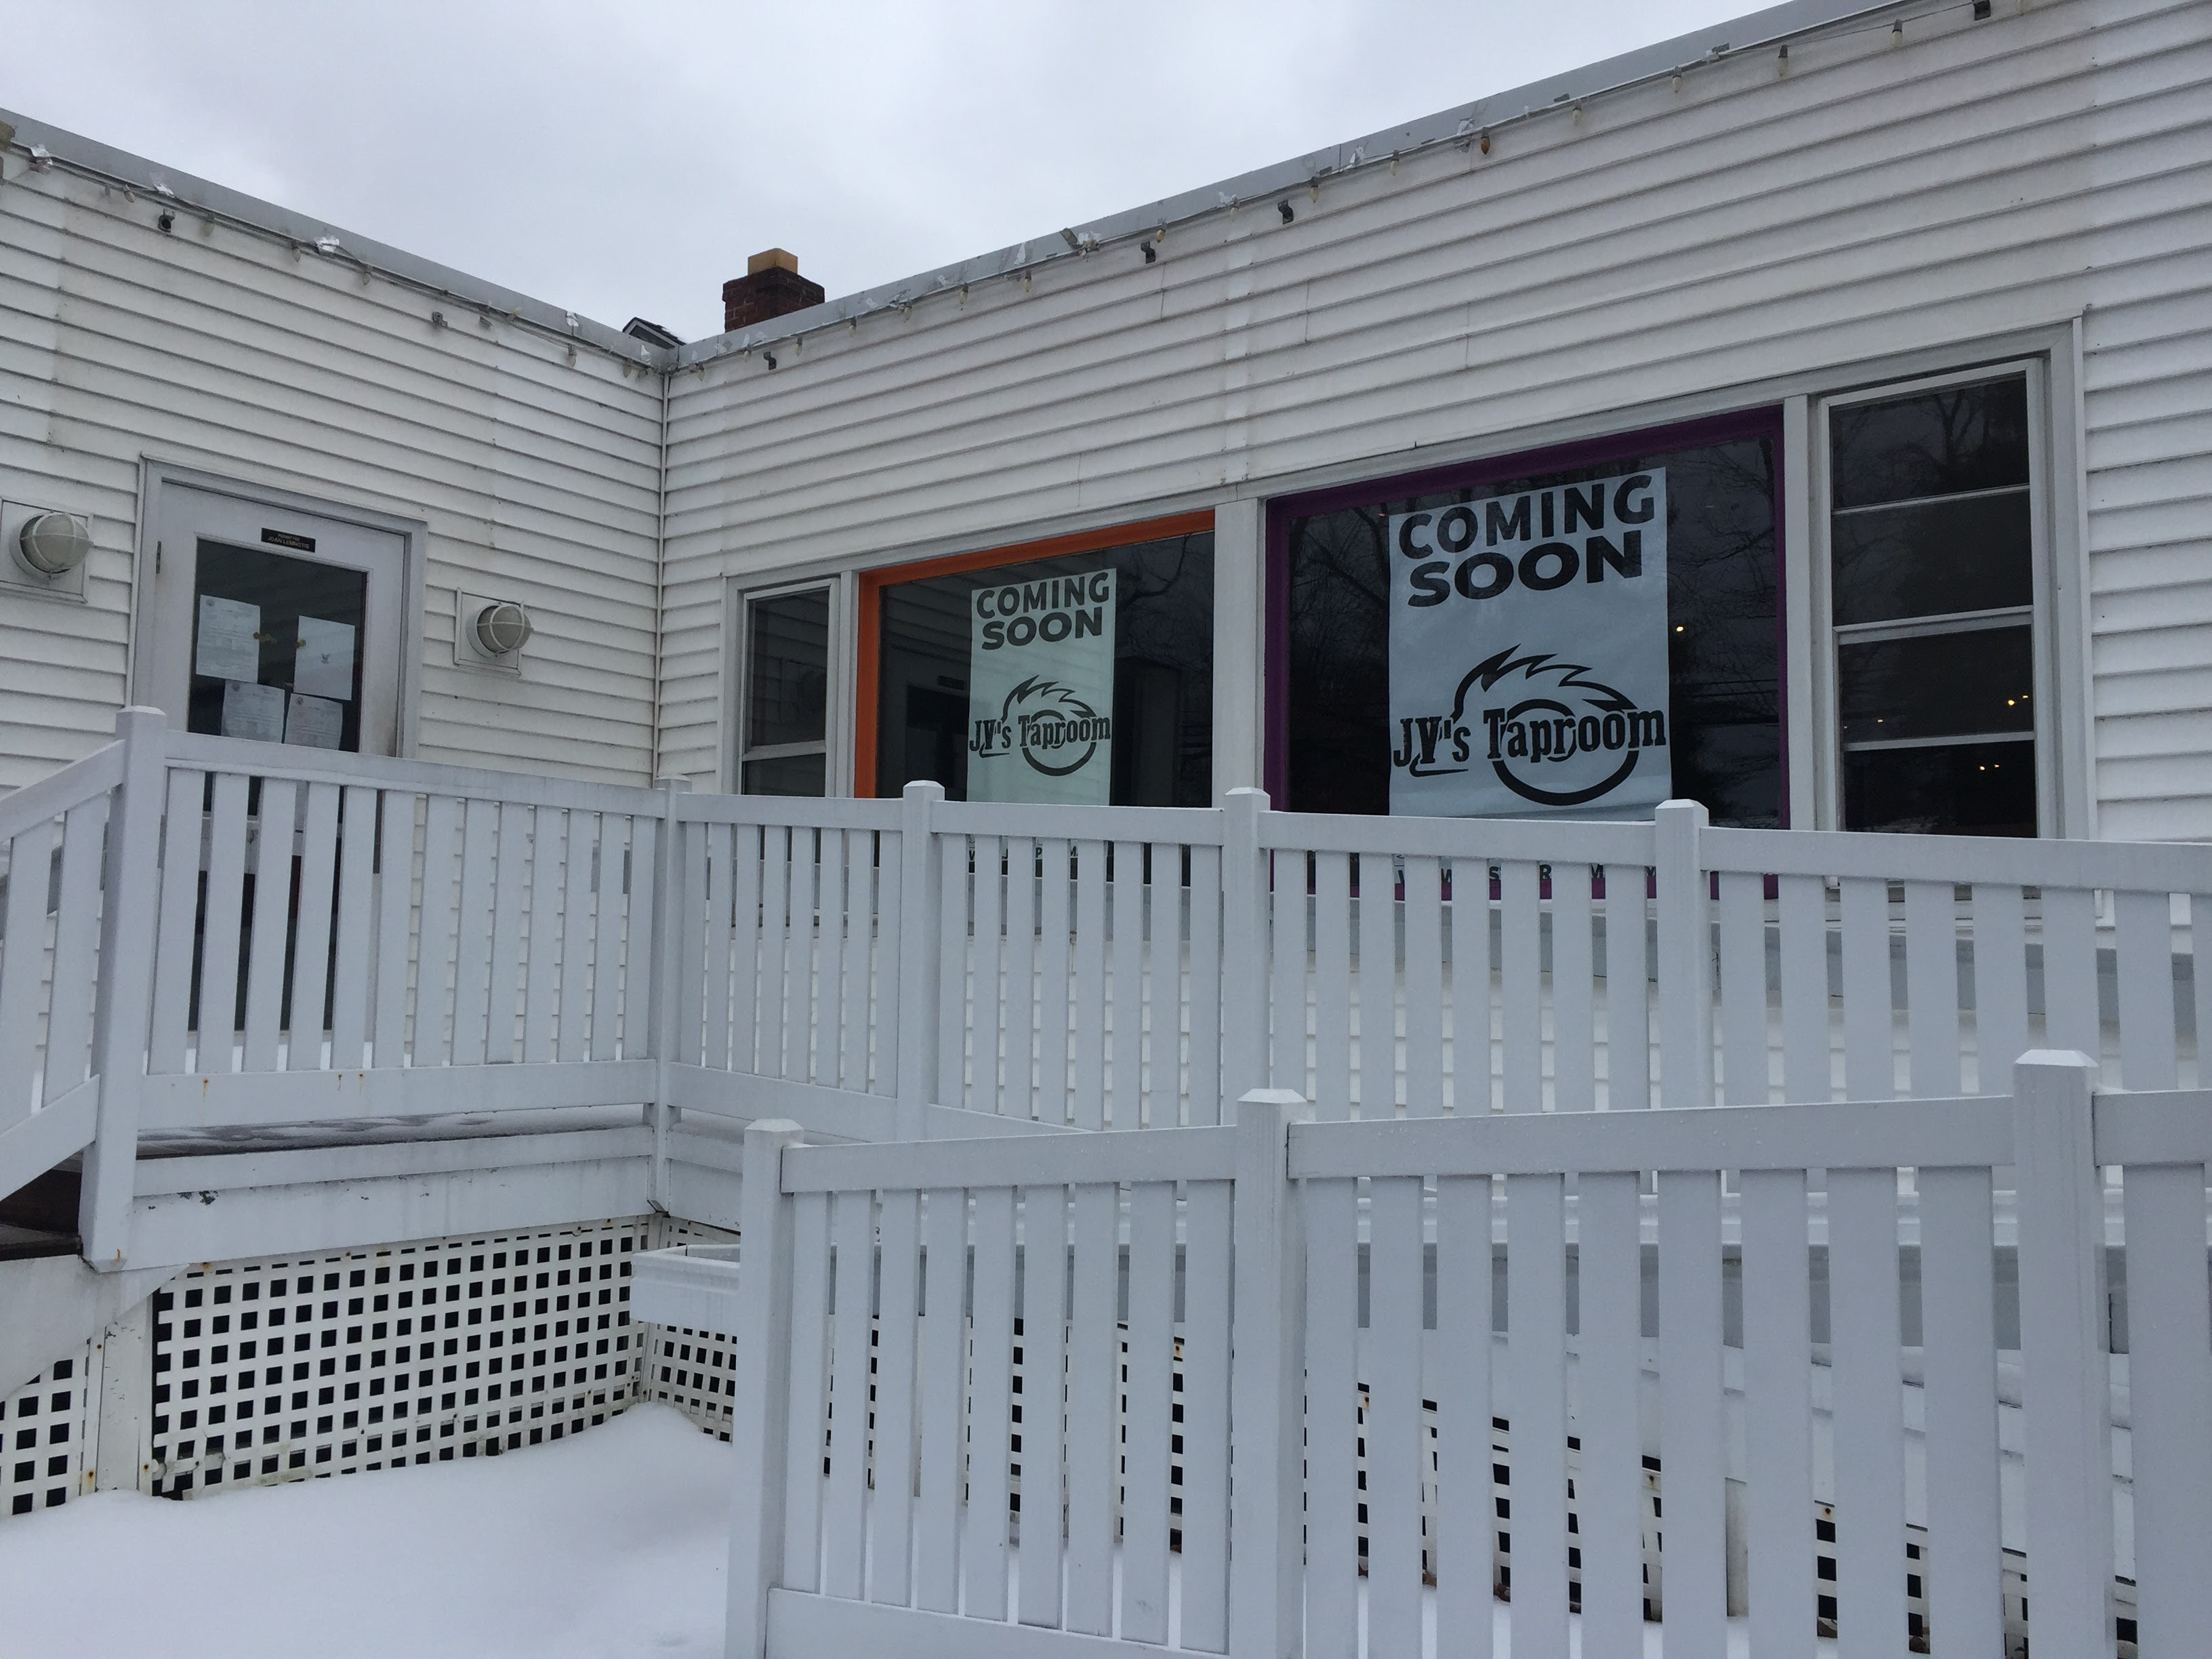 Rebel Dog Coffee Co., where Confetti restaurant used to be, in Plainville along with JV